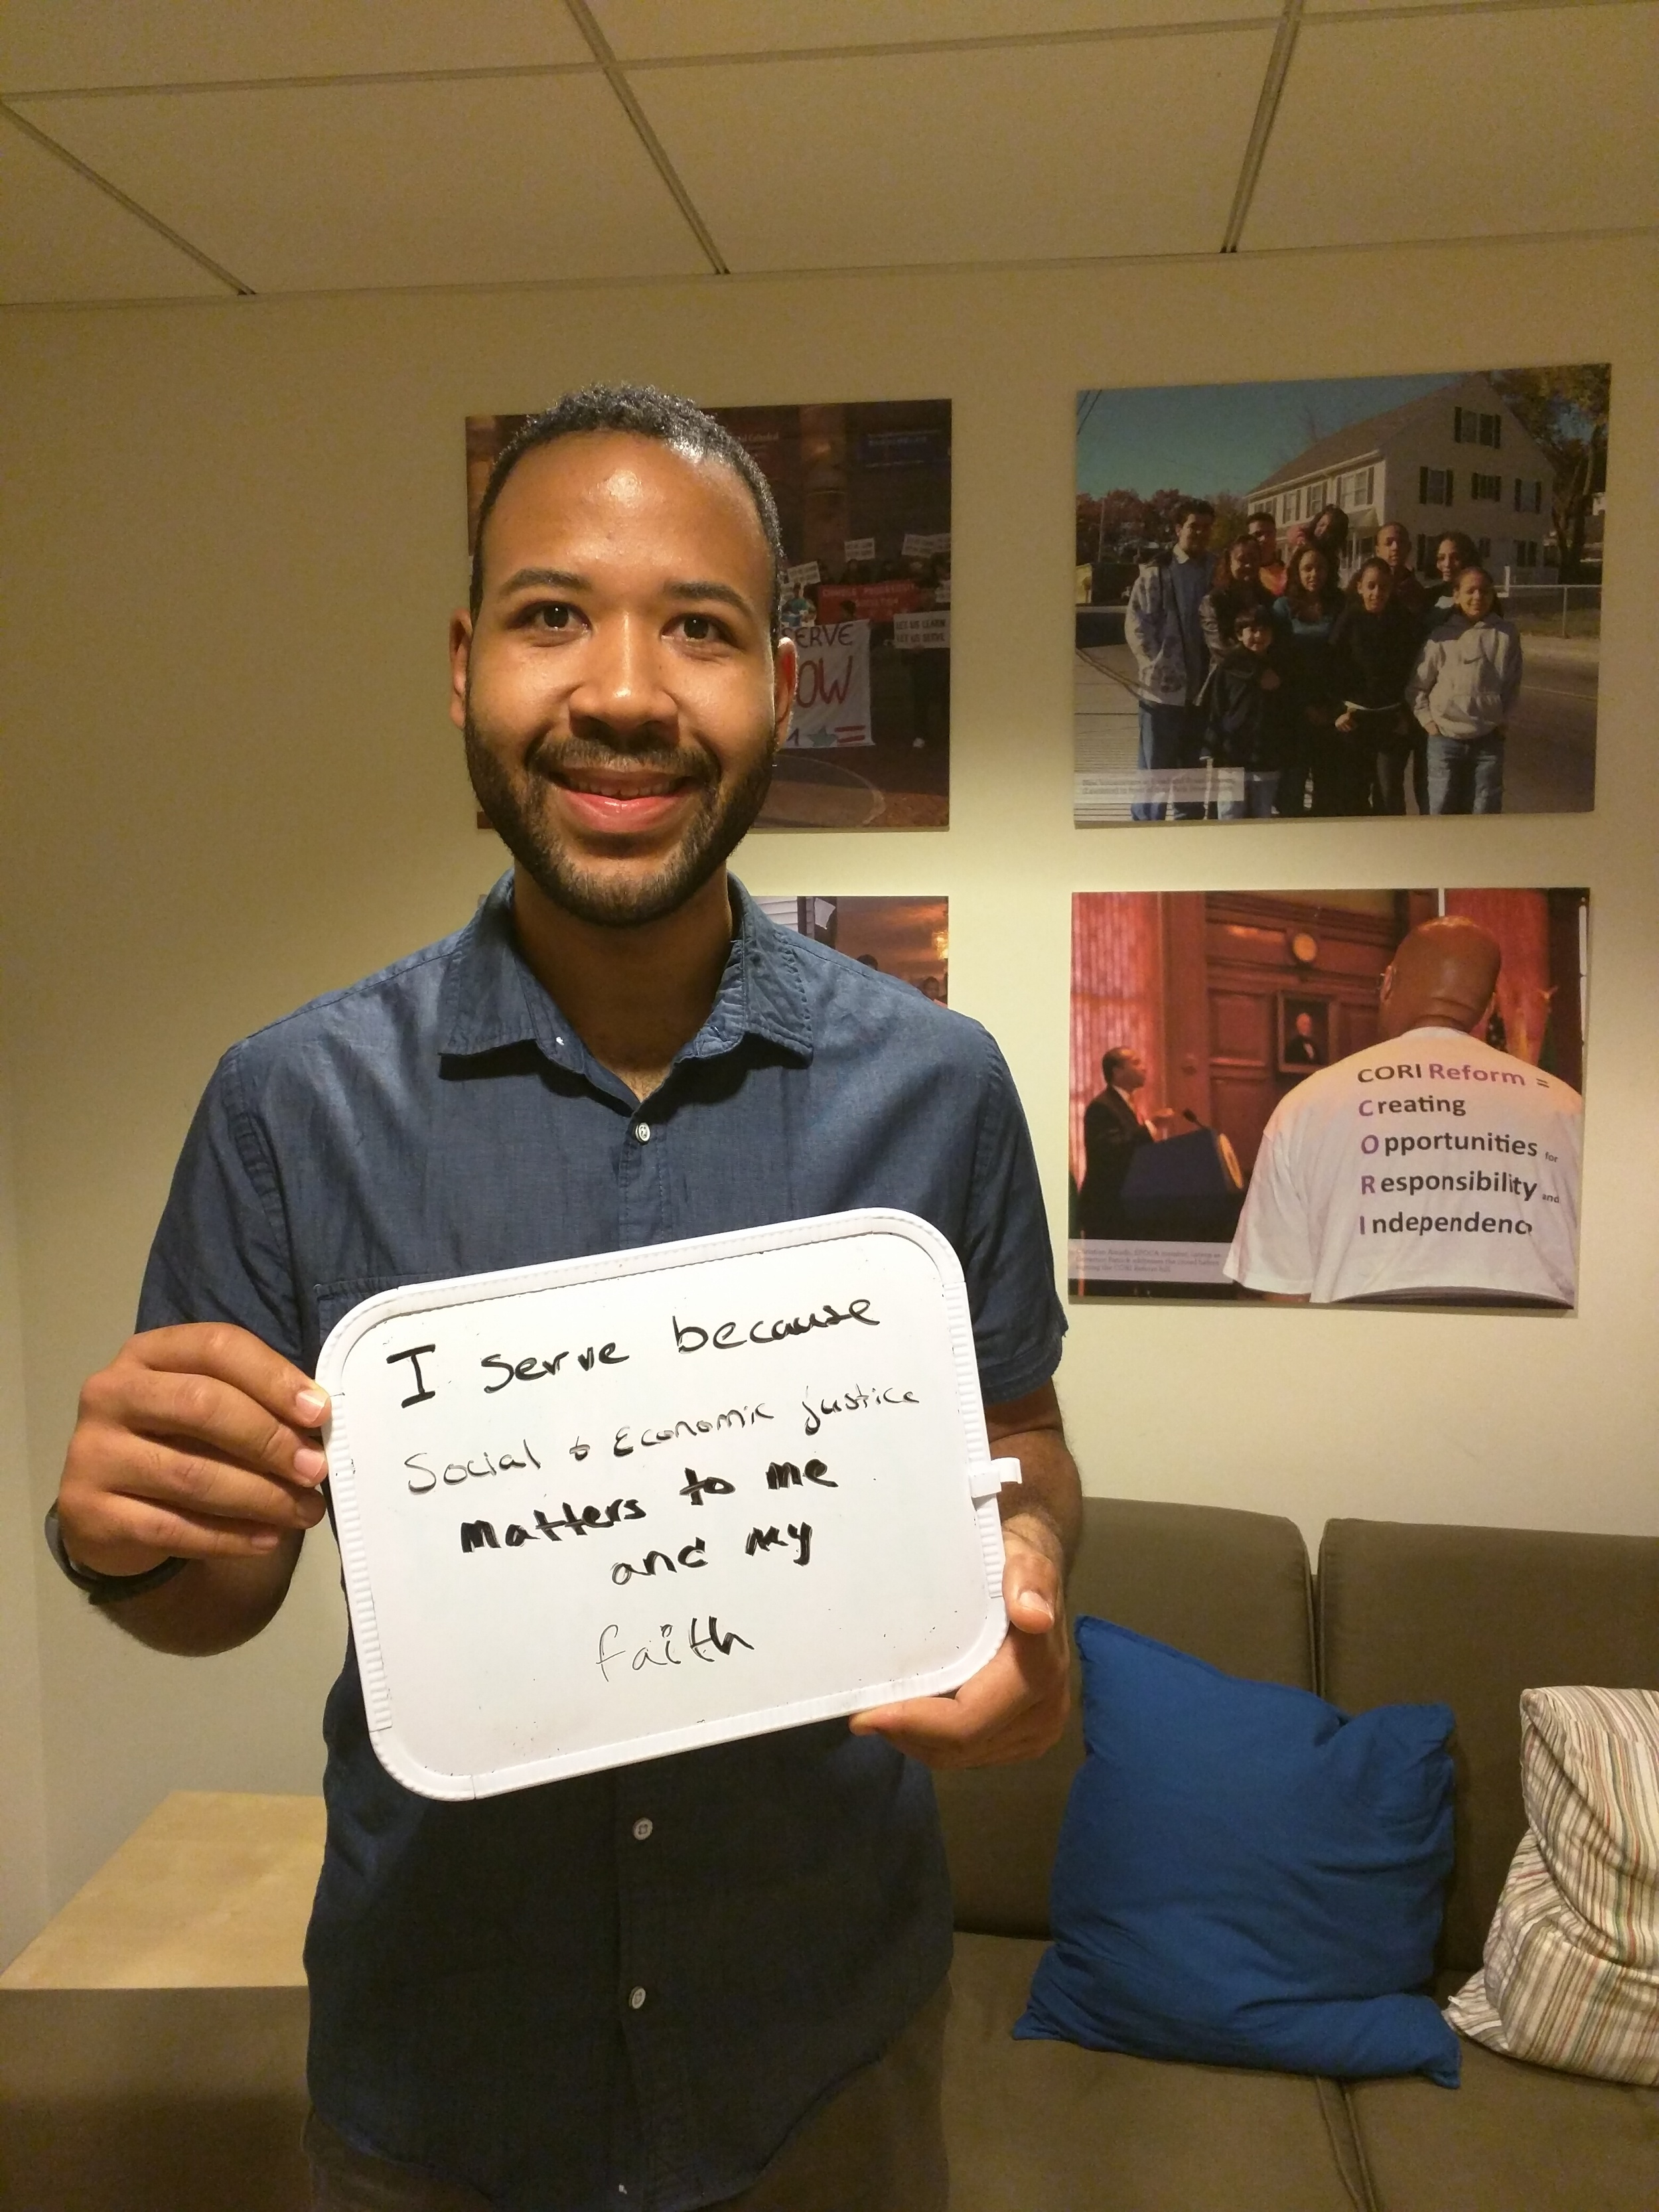 """""""I serve because social & economic justice matters to me and my faith"""" - Ashton Murray, Micah Fellow at Episcopal City Mission & Cambridge intentional community"""